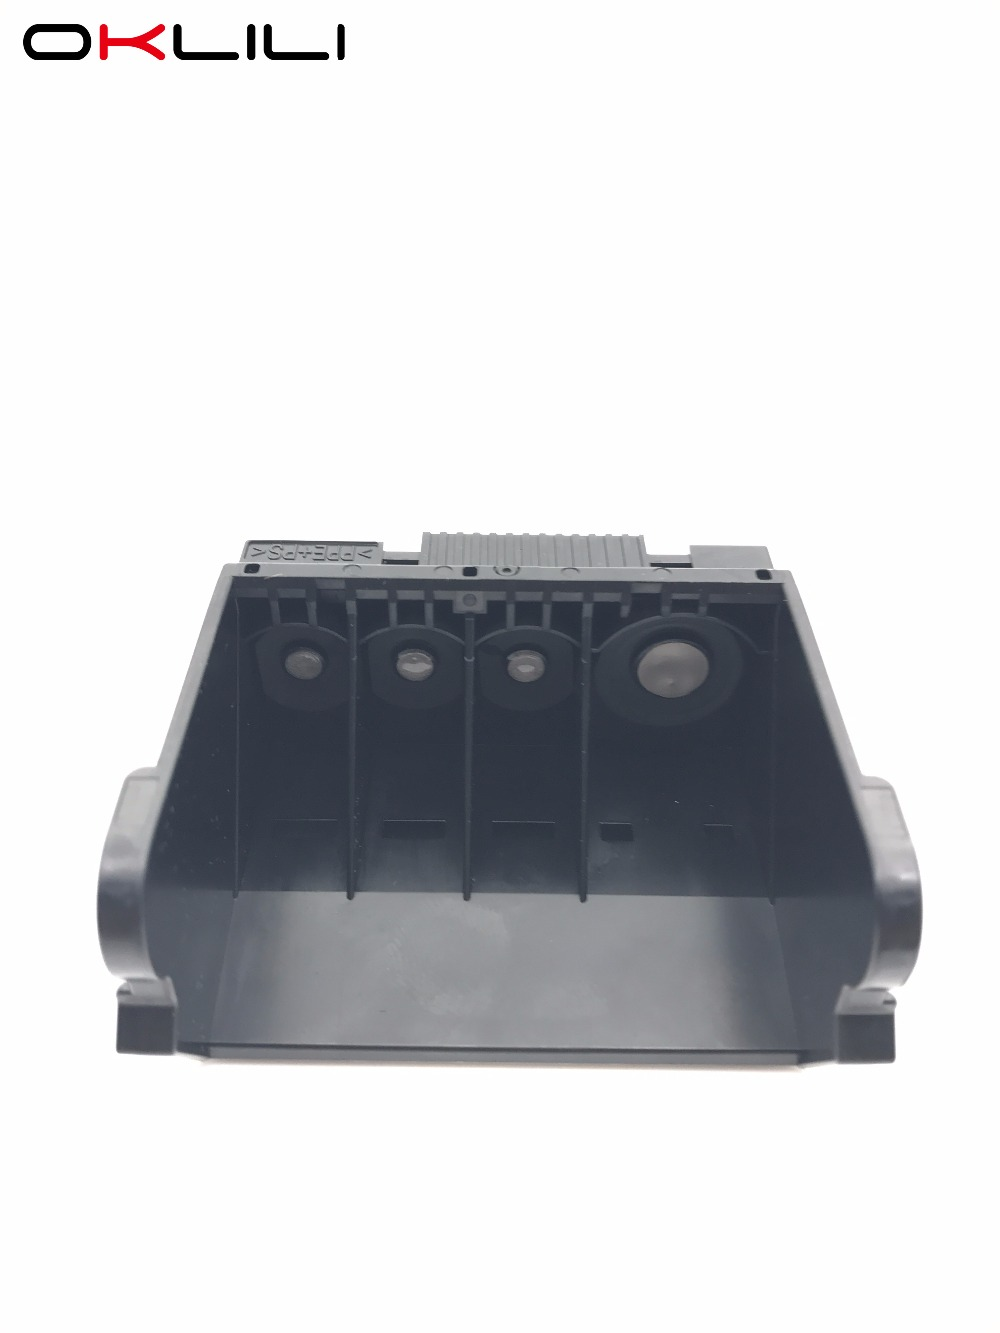 OKLILI ASLI QY6-0070 QY6-0070-000 Printhead Print Head Printer Head untuk Canon MP510 MP520 MX700 iP3300 iP3500